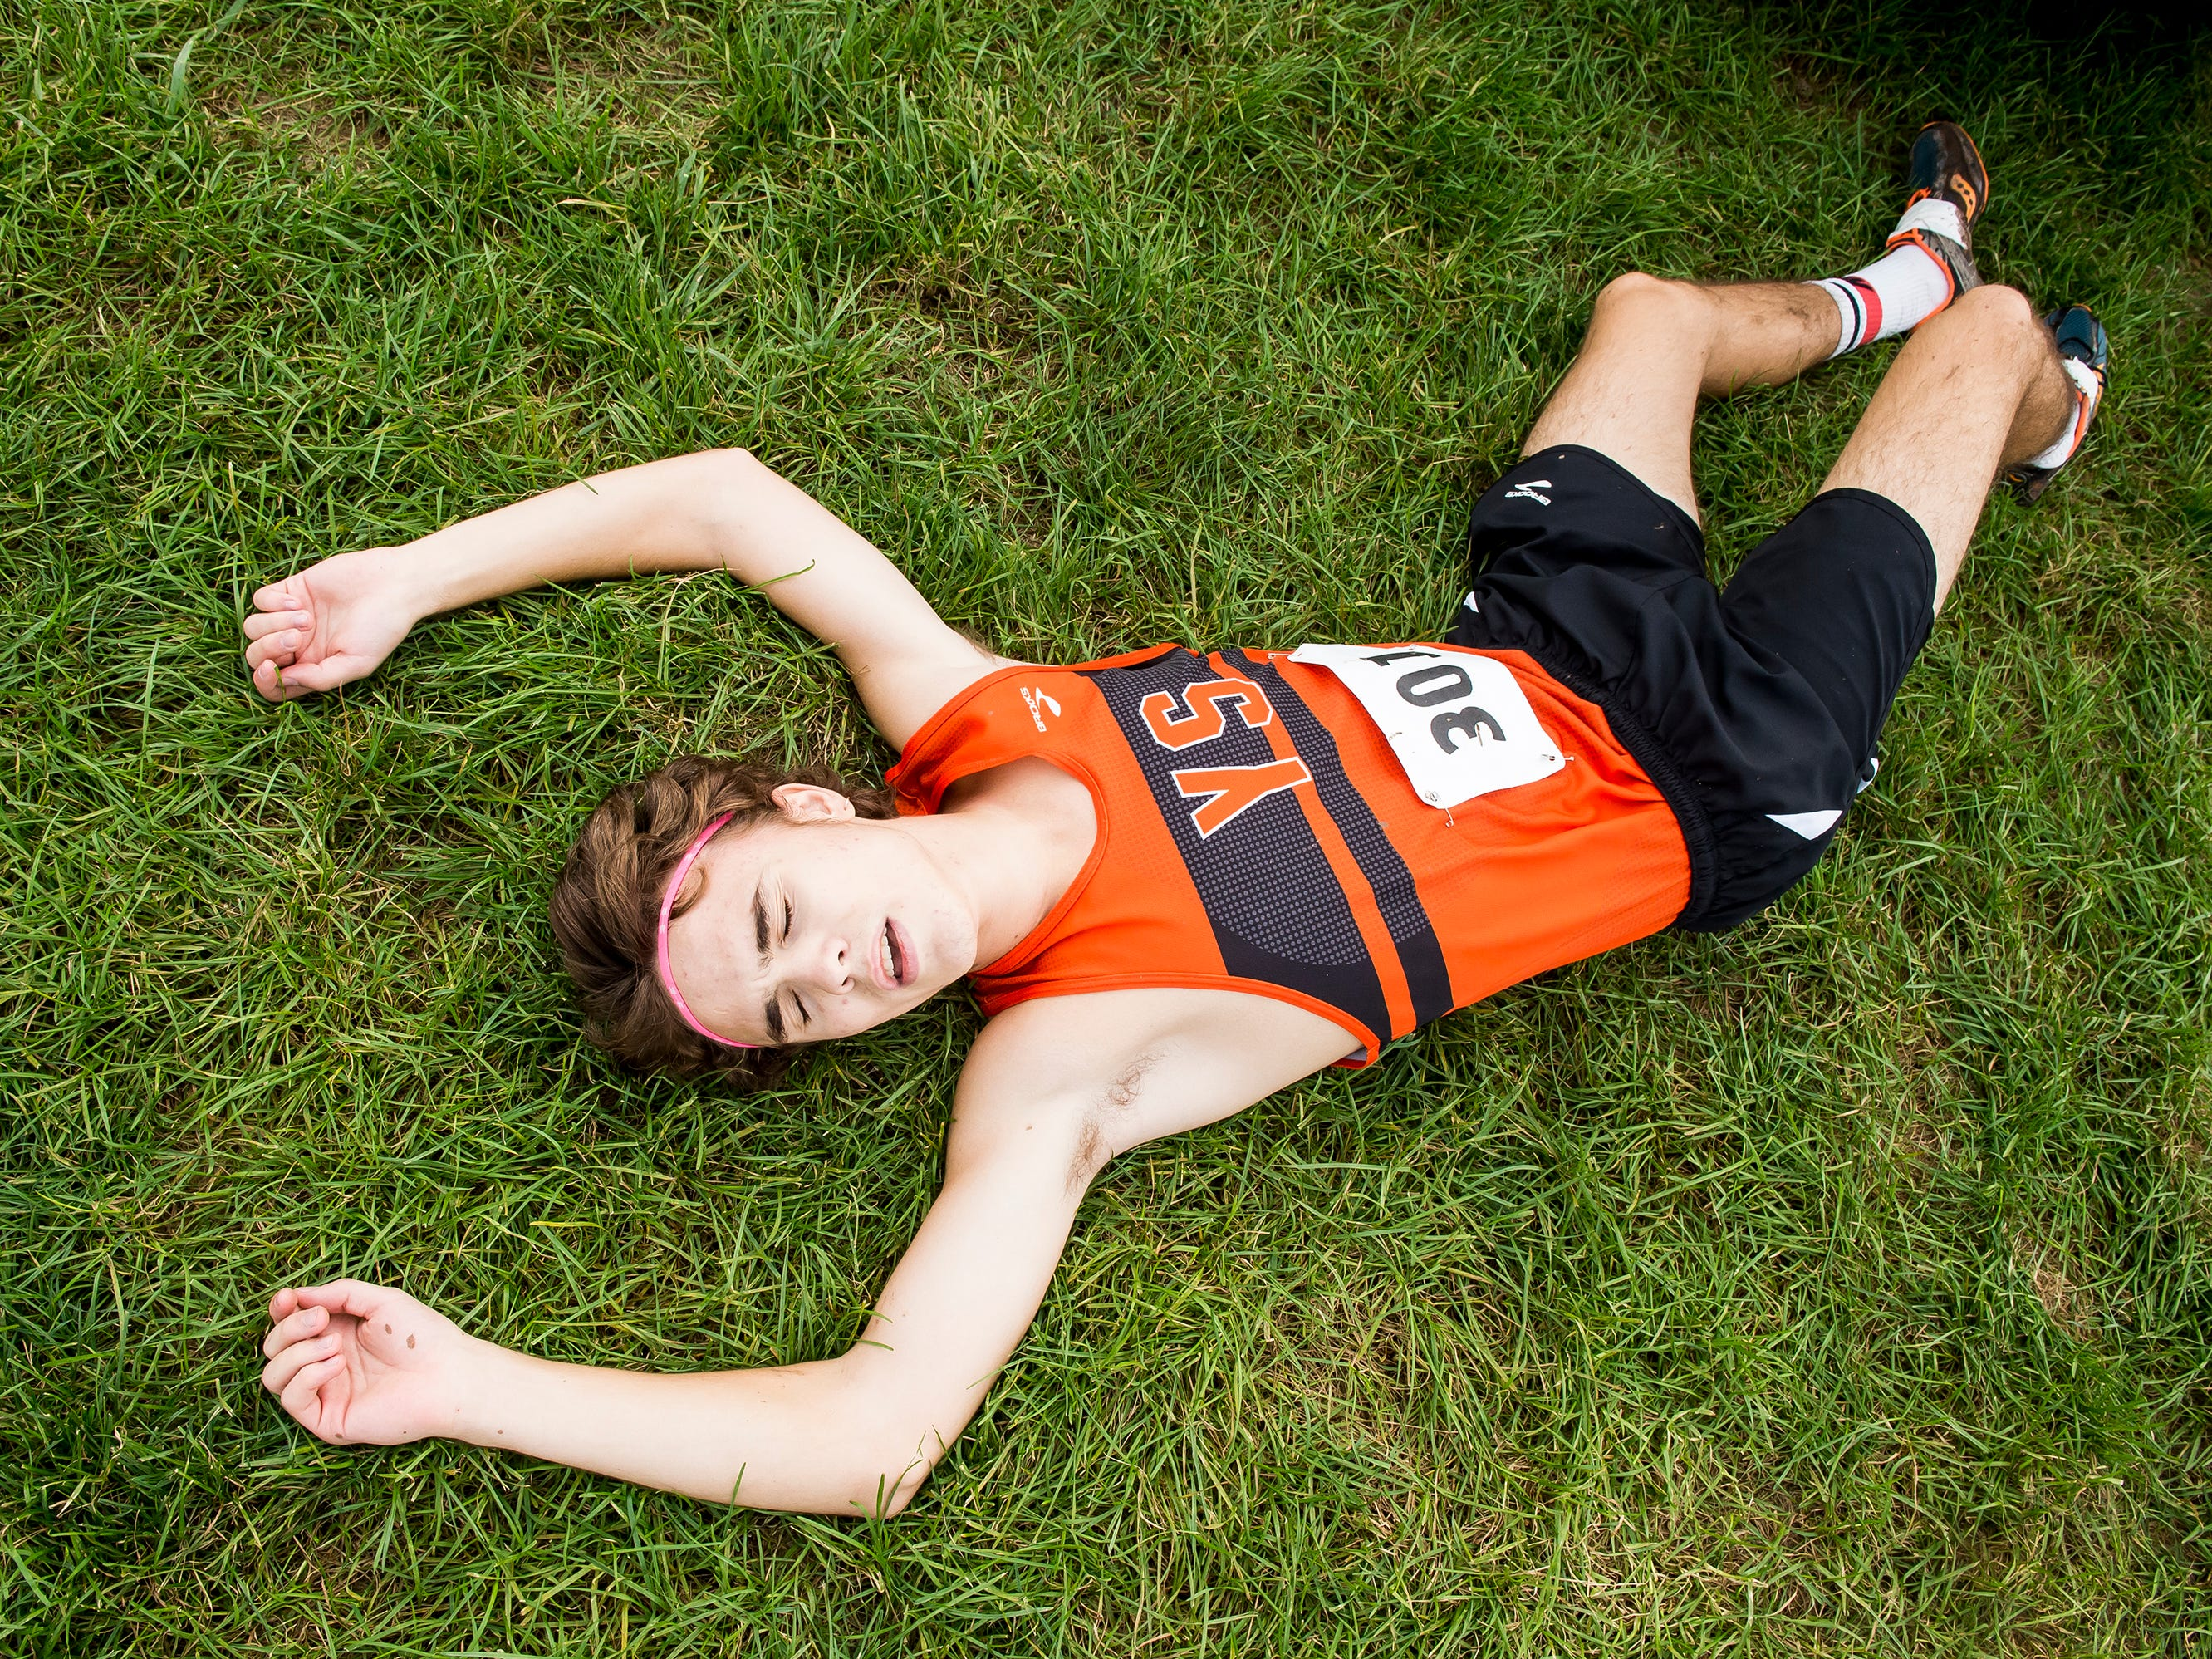 York Suburban's Jarrett Raudensky rests in the grass after competing in the YAIAA cross country championships at Gettysburg Area High School on Tuesday, October 16, 2018. Raudensky finished third in the boys' race with a time of 16:48.9